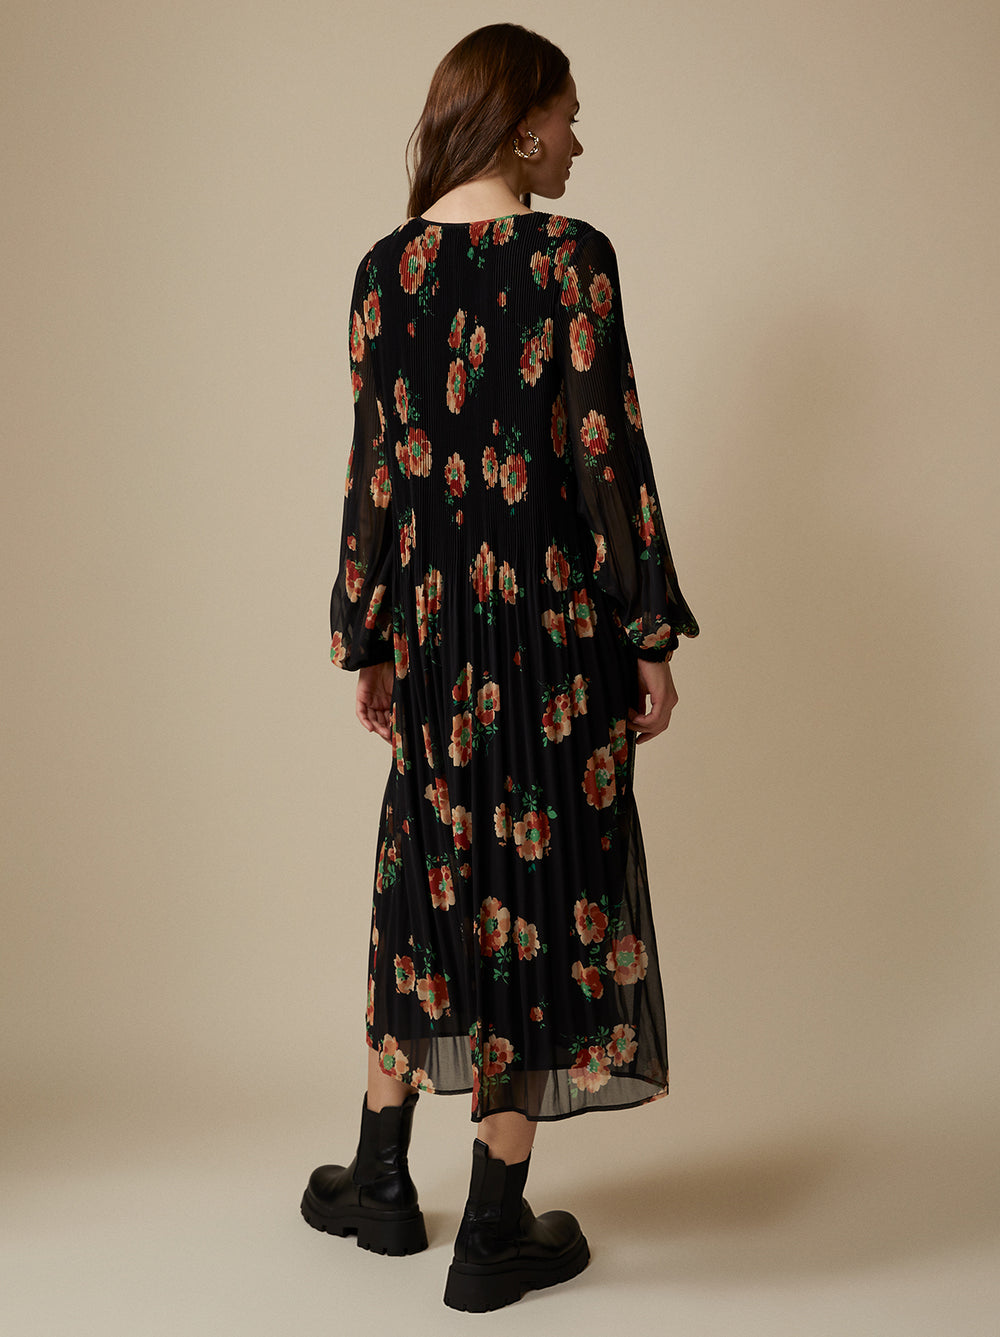 Willow Black Floral Pleated Dress by KITRI Studio